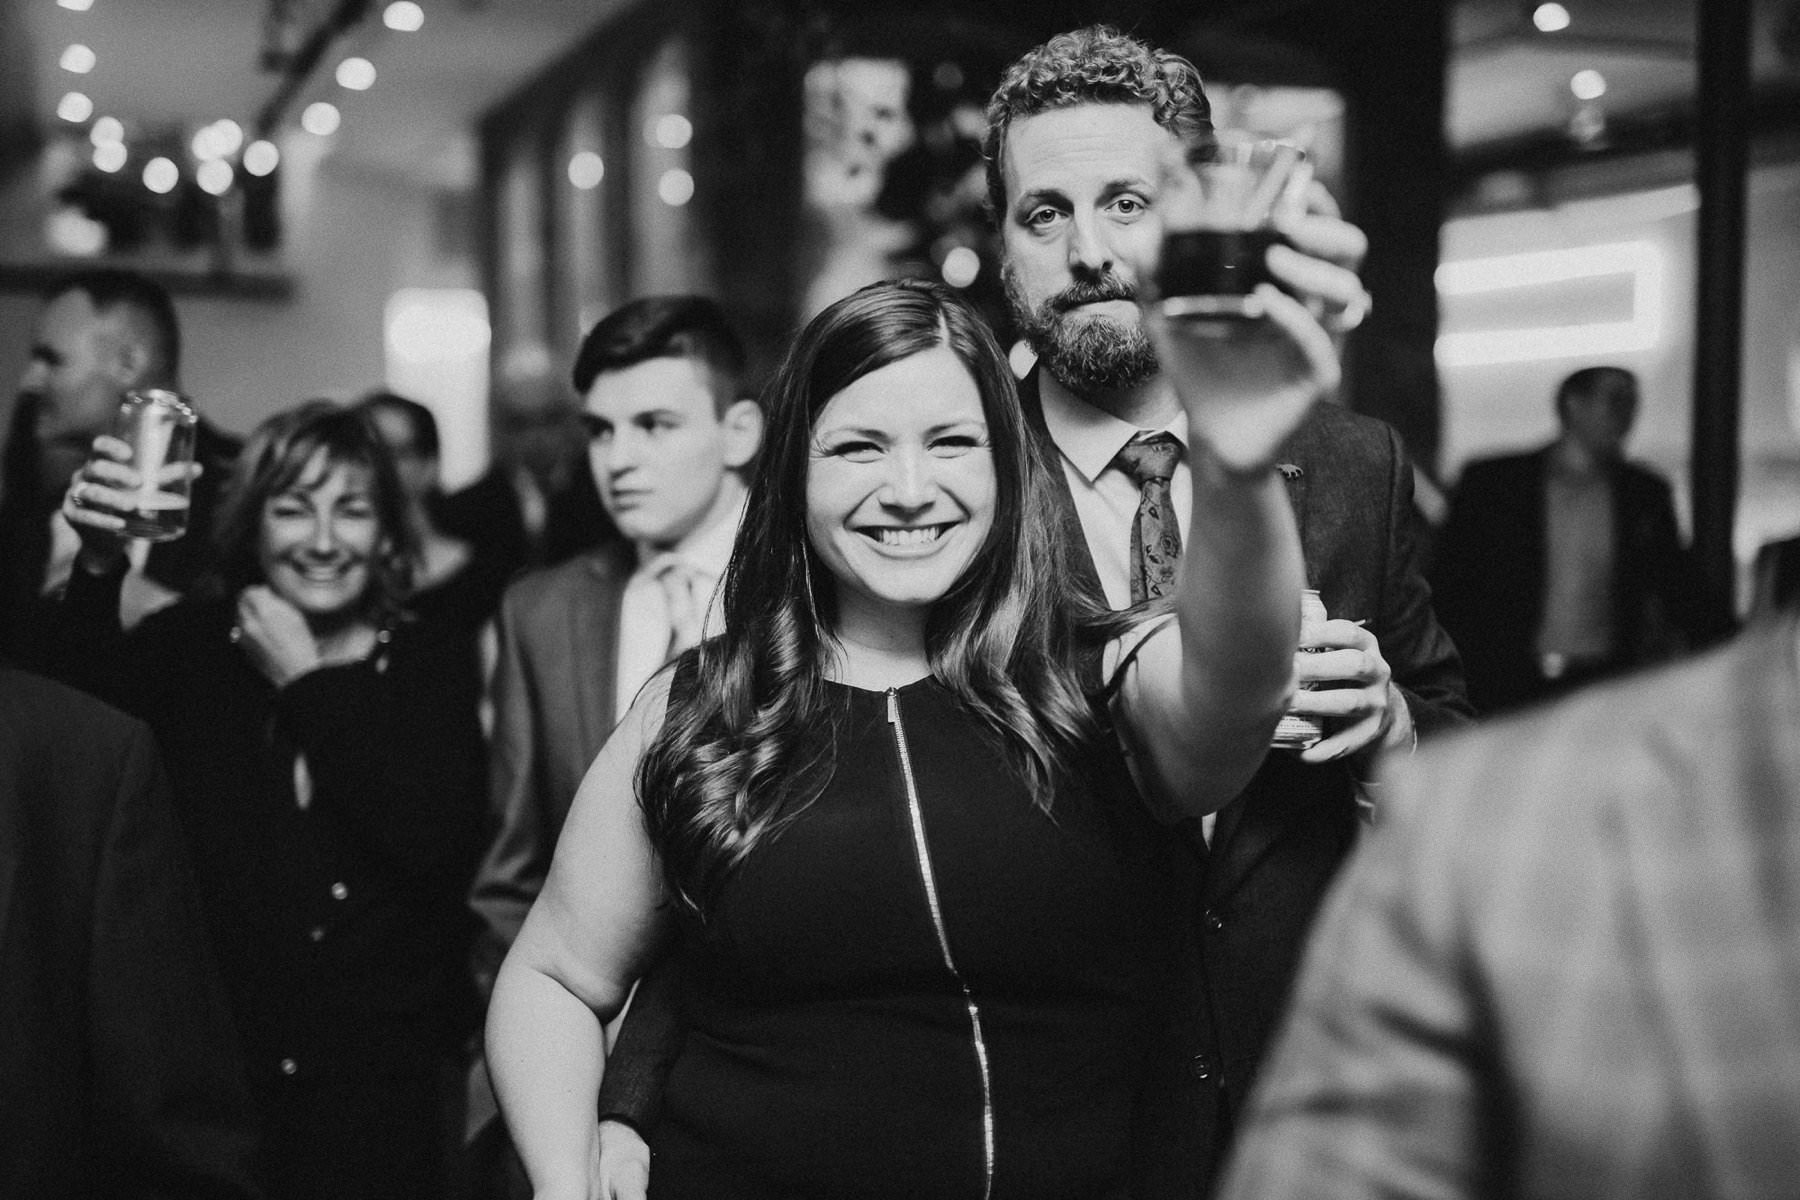 mission_taqueria_philly_wedding-83.jpg